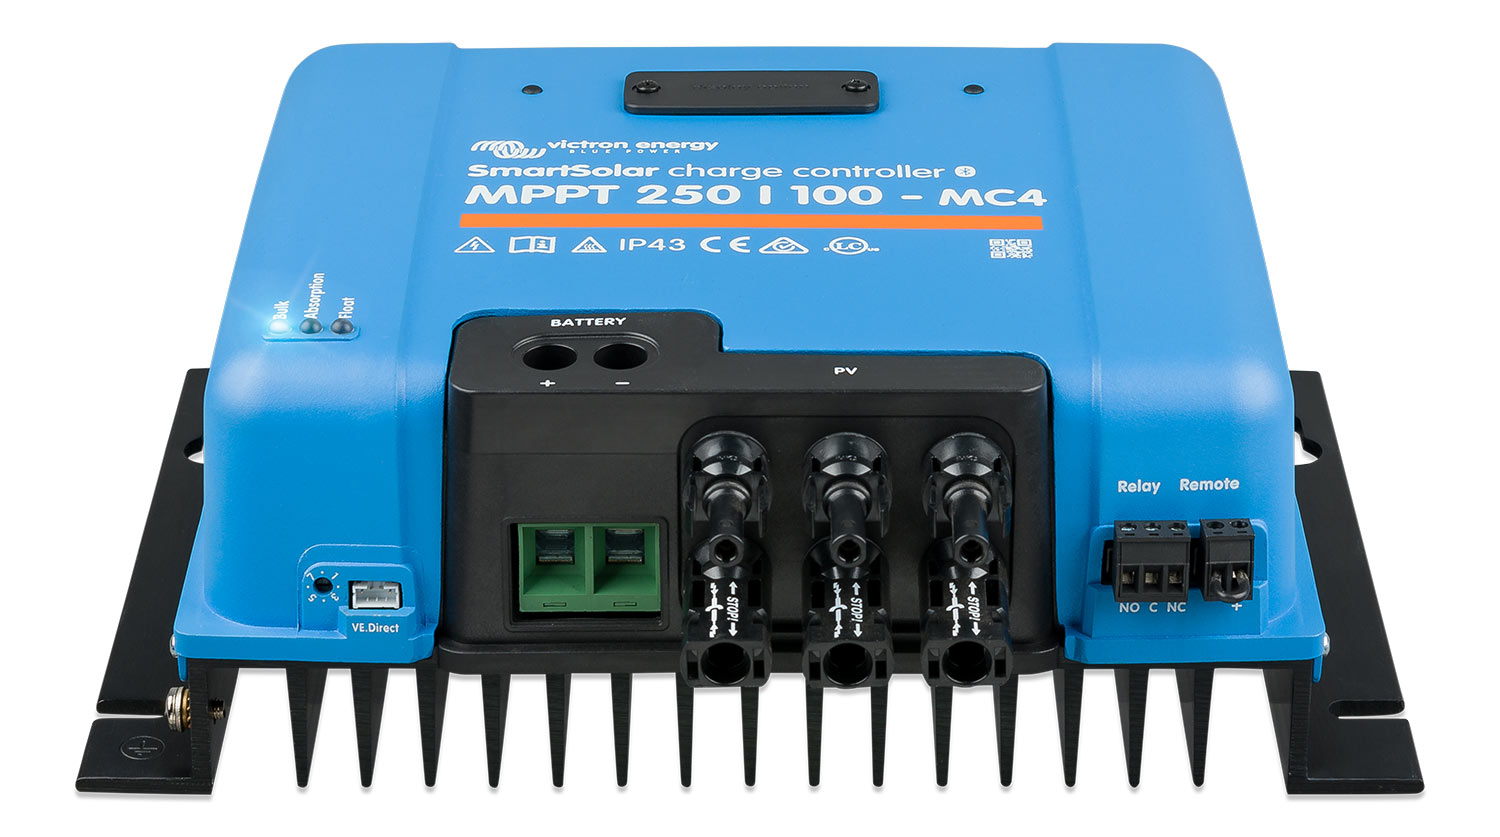 Standard MC4 connectors on the Victron Energy SmartSolar MPPT 250/100 charge controller